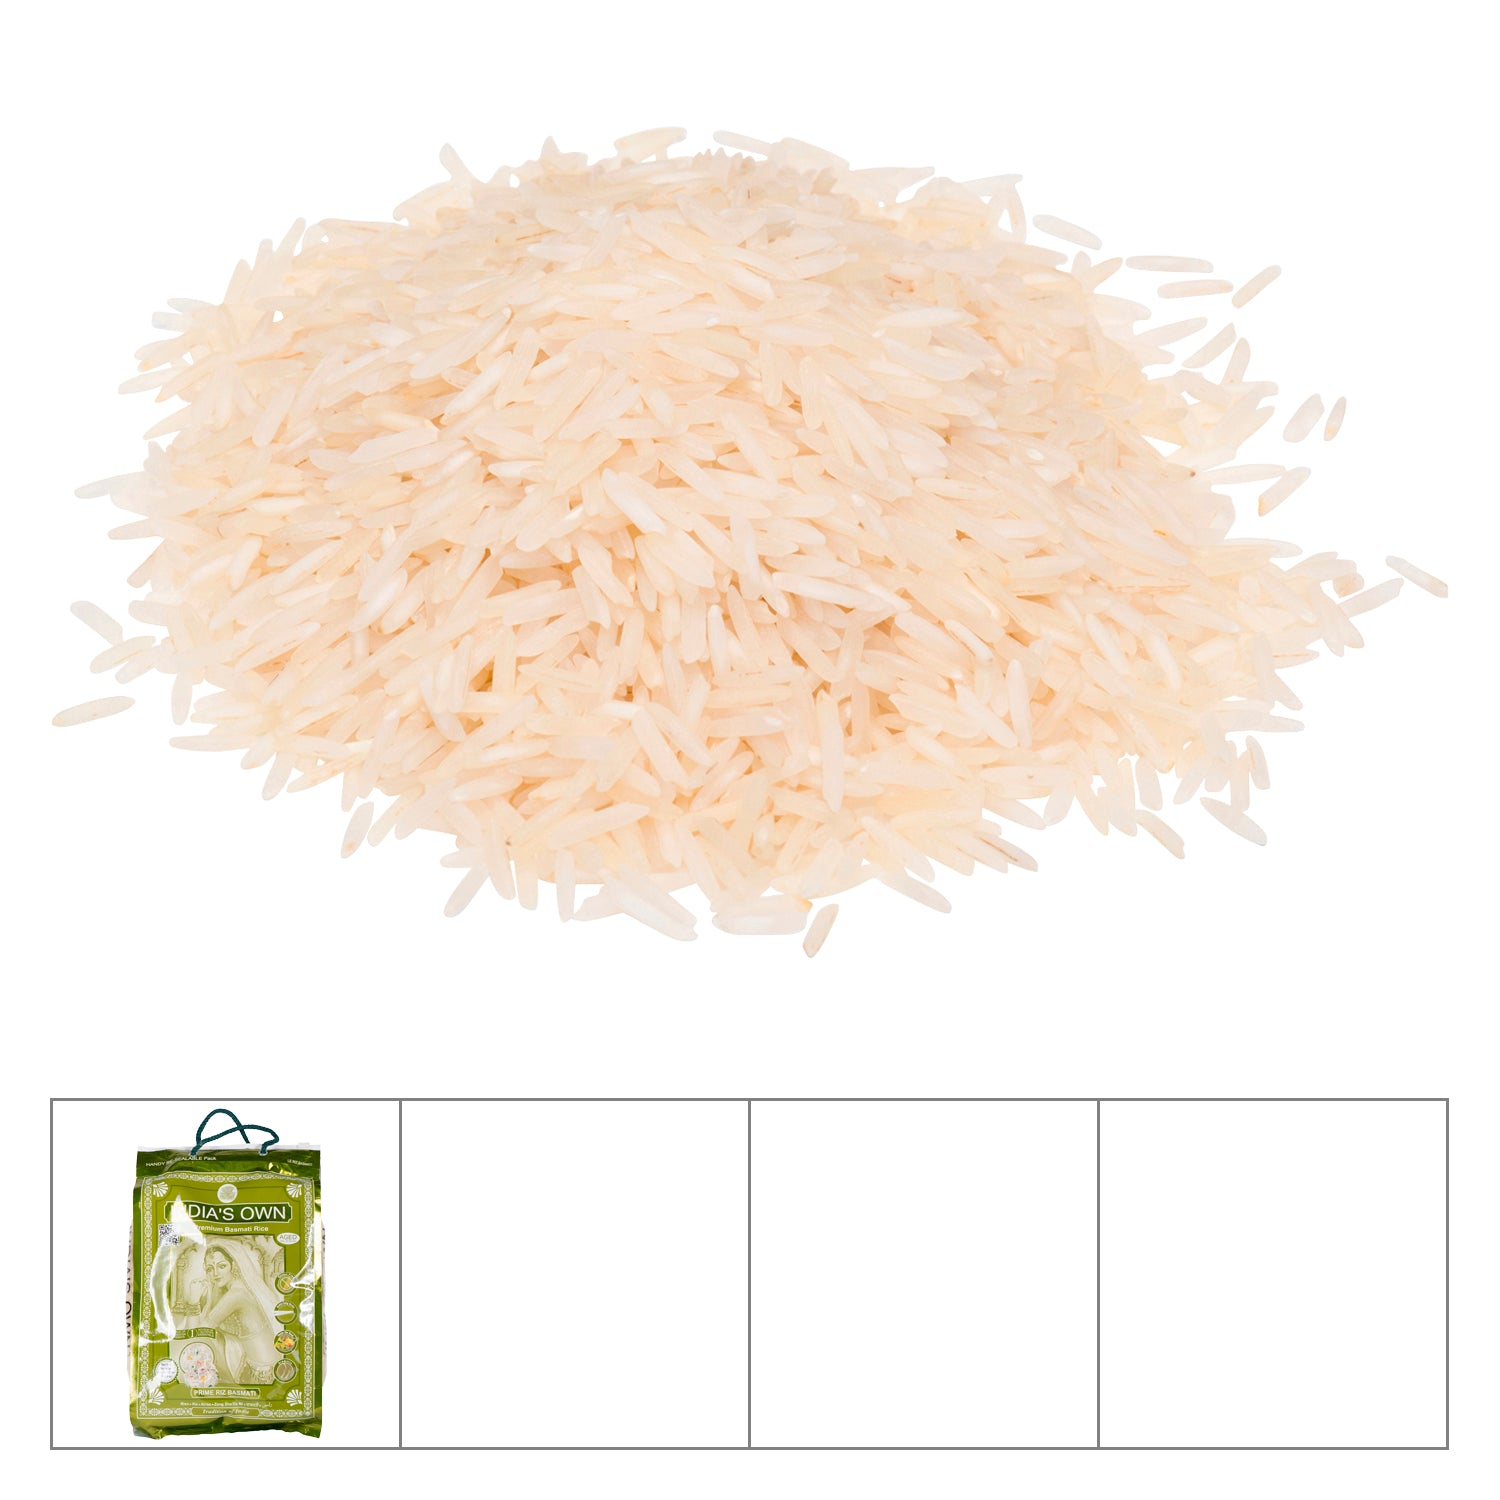 India's White Basmati Rice 10 lb - 1 Pack [$1.80/lb]